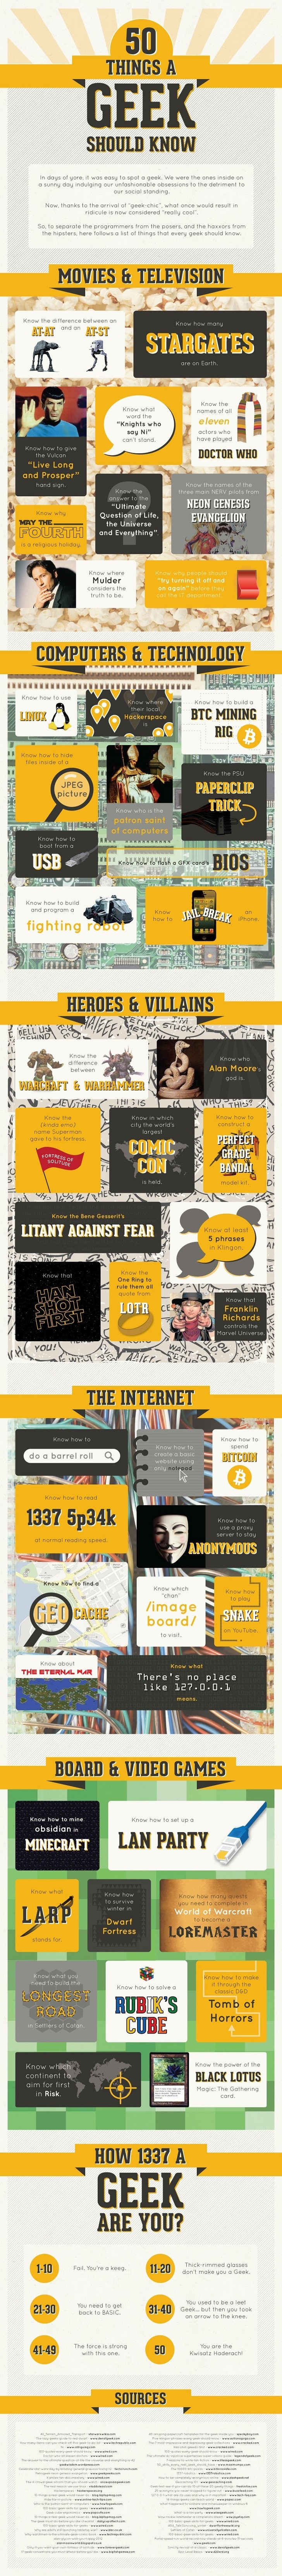 the-ultimate-geek-test-infographic